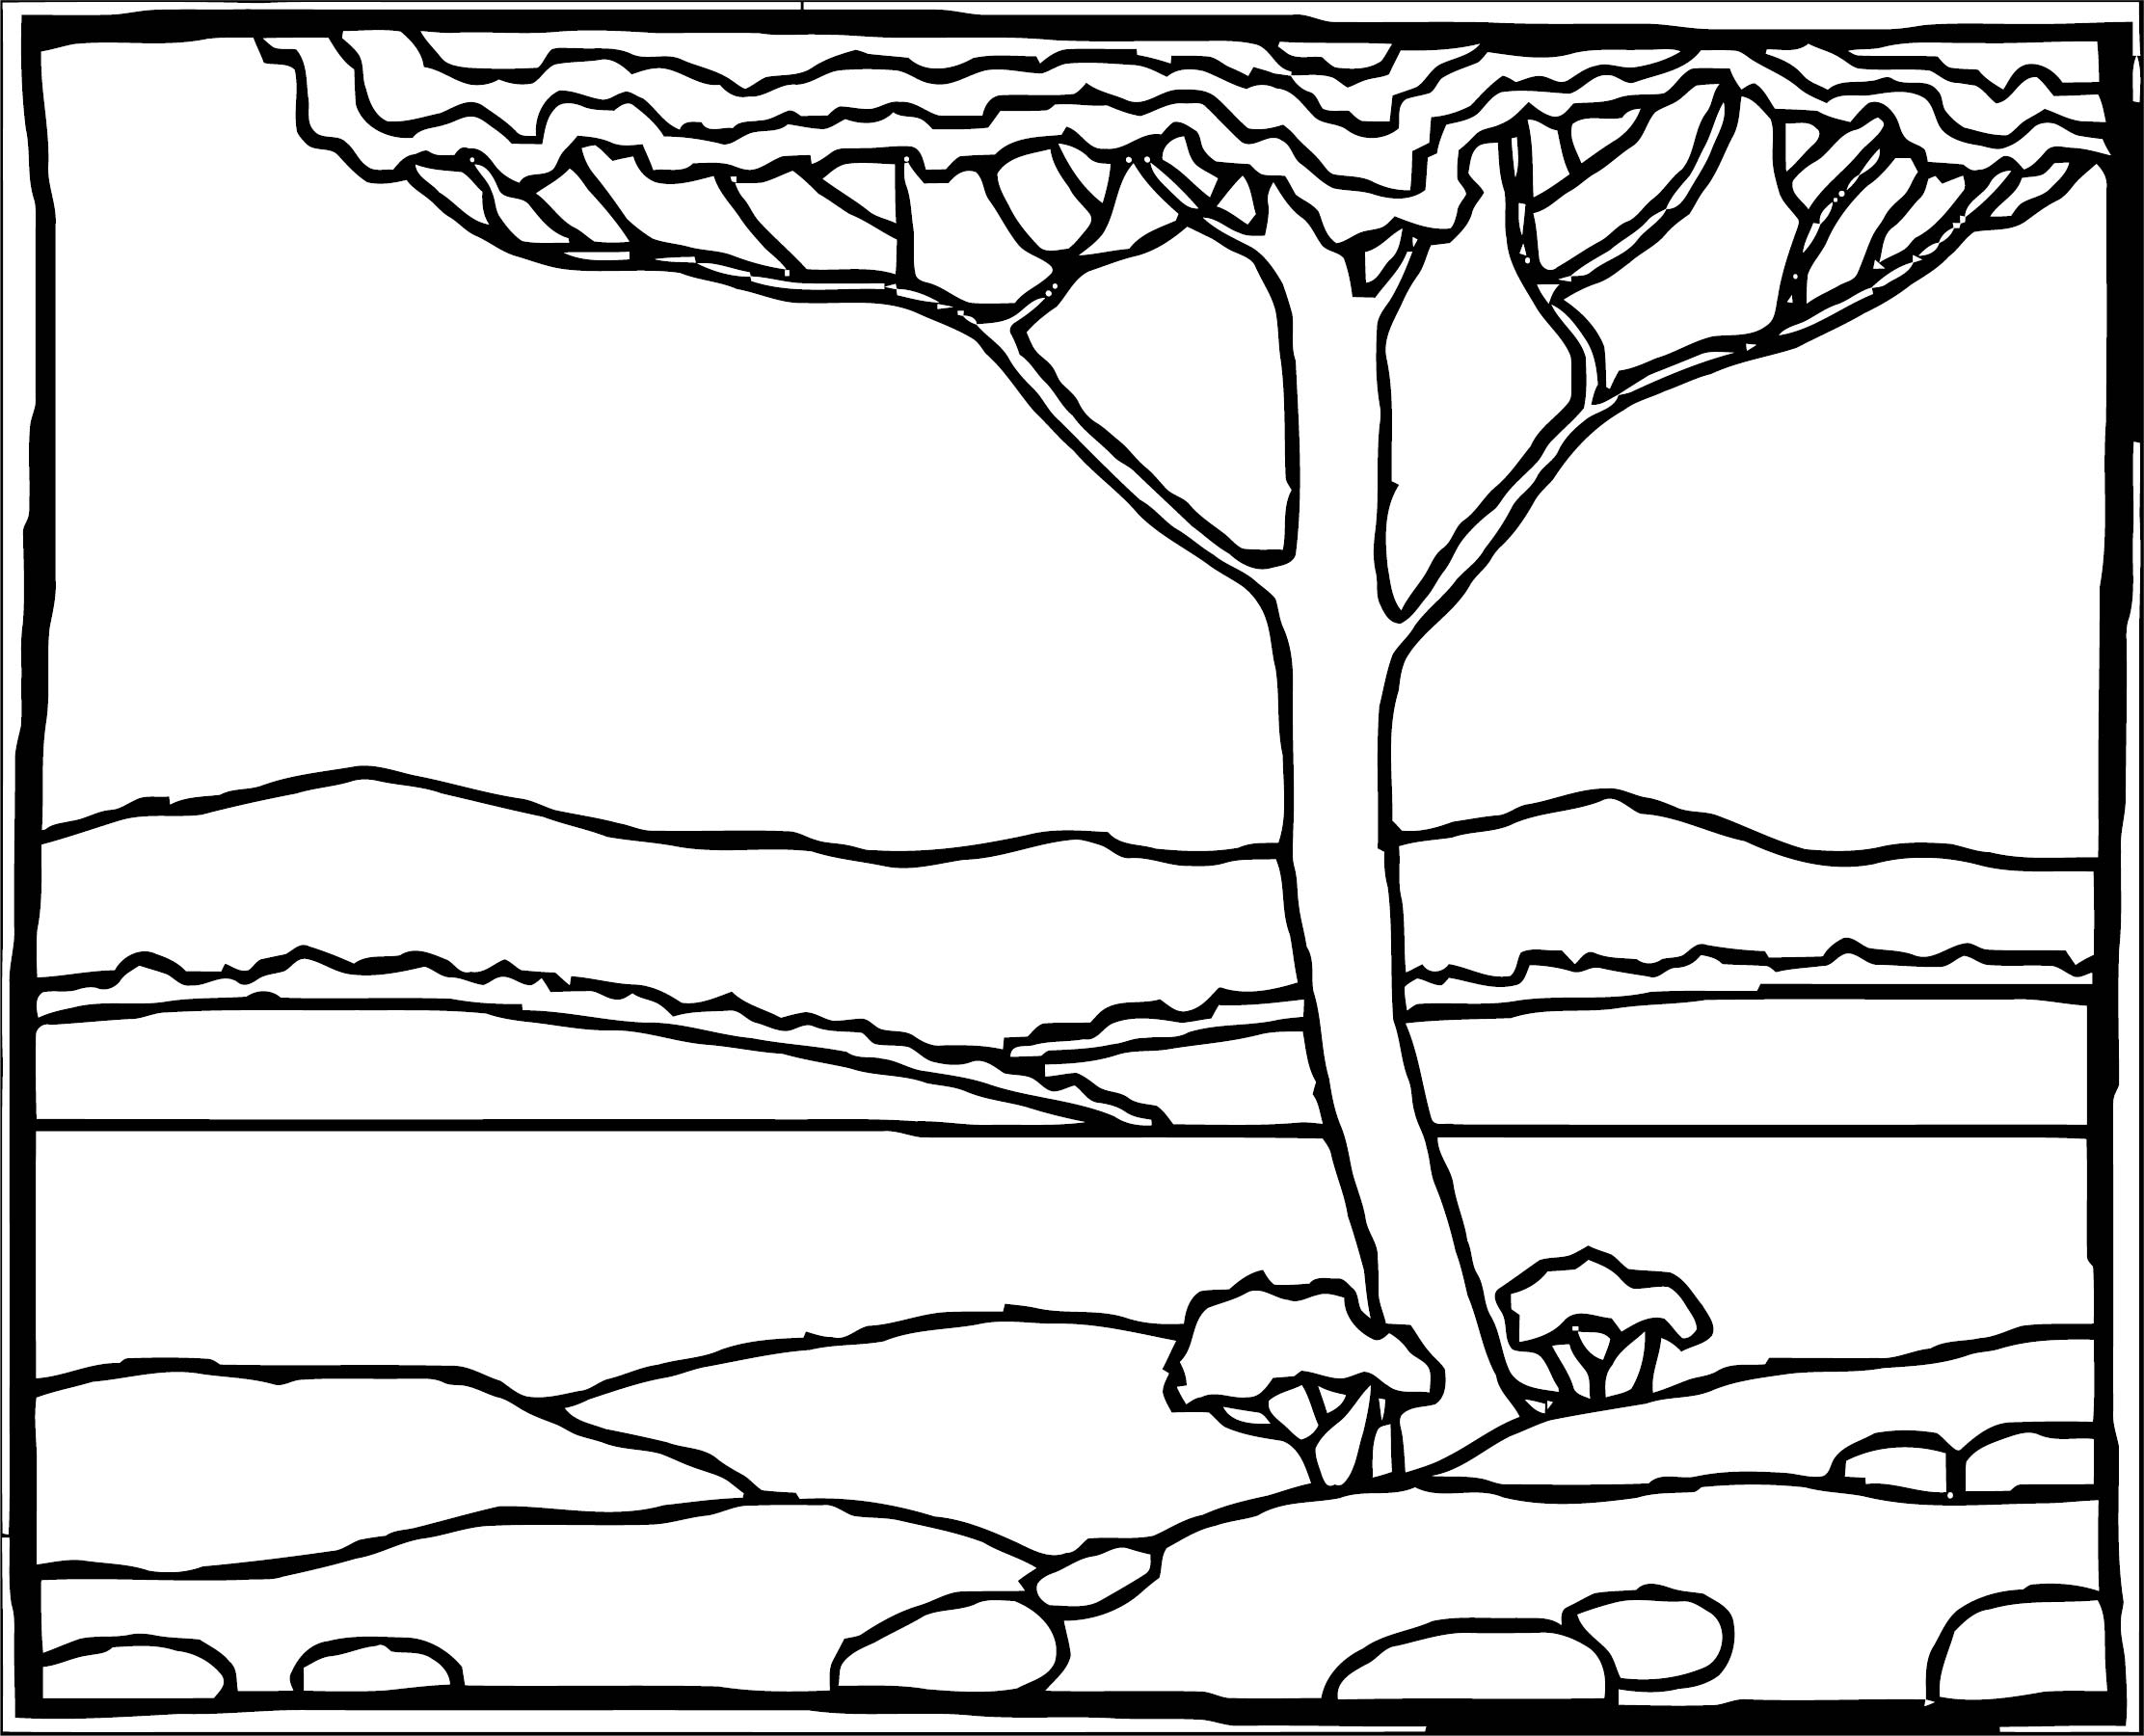 Art Cuscapes Landscape Coloring Page